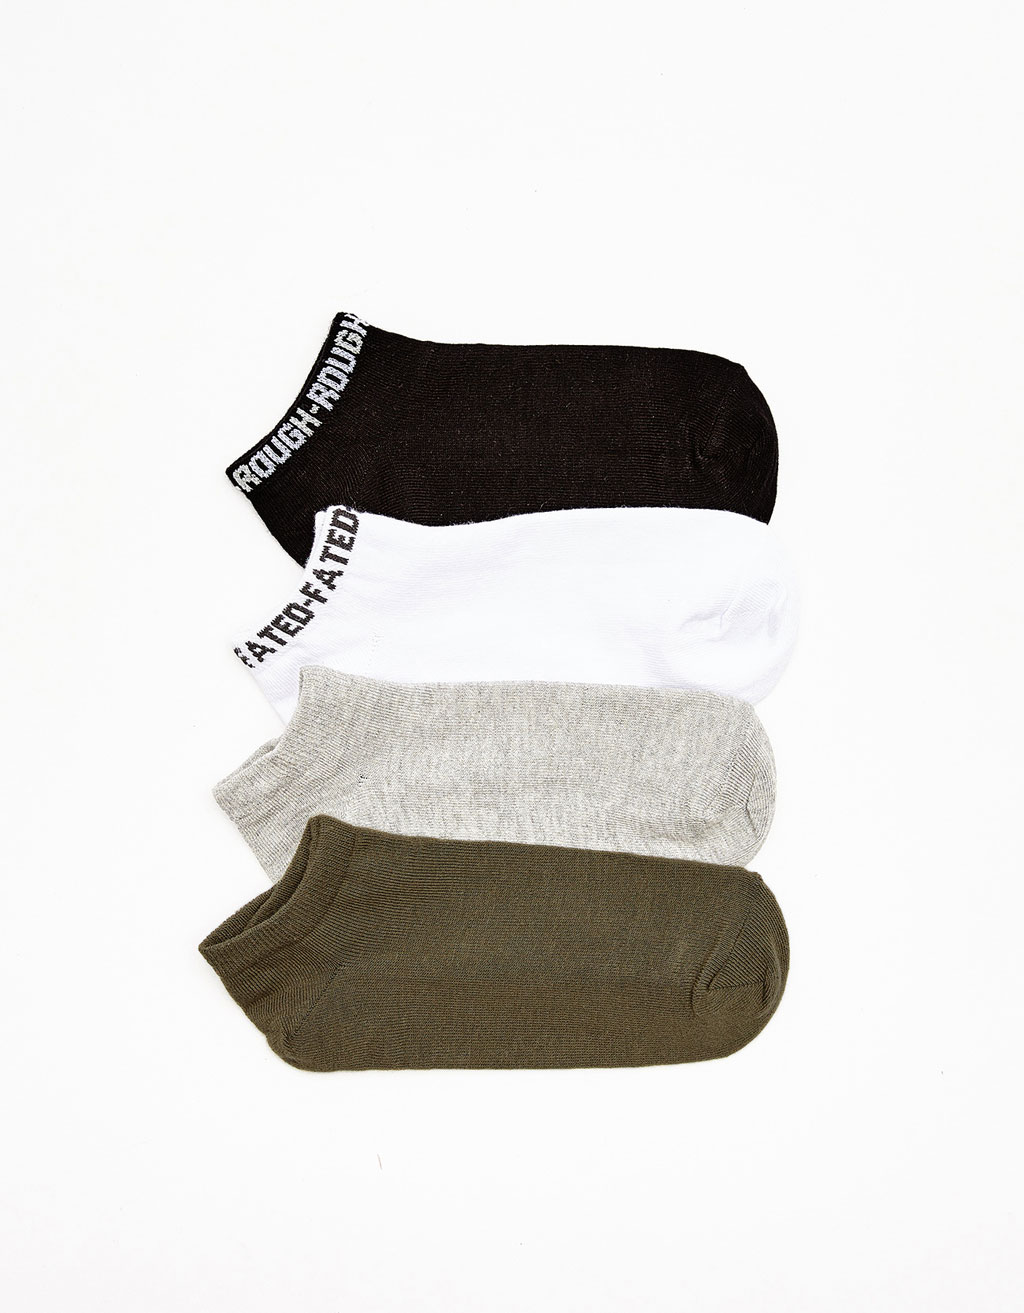 Set of 4 ankle socks